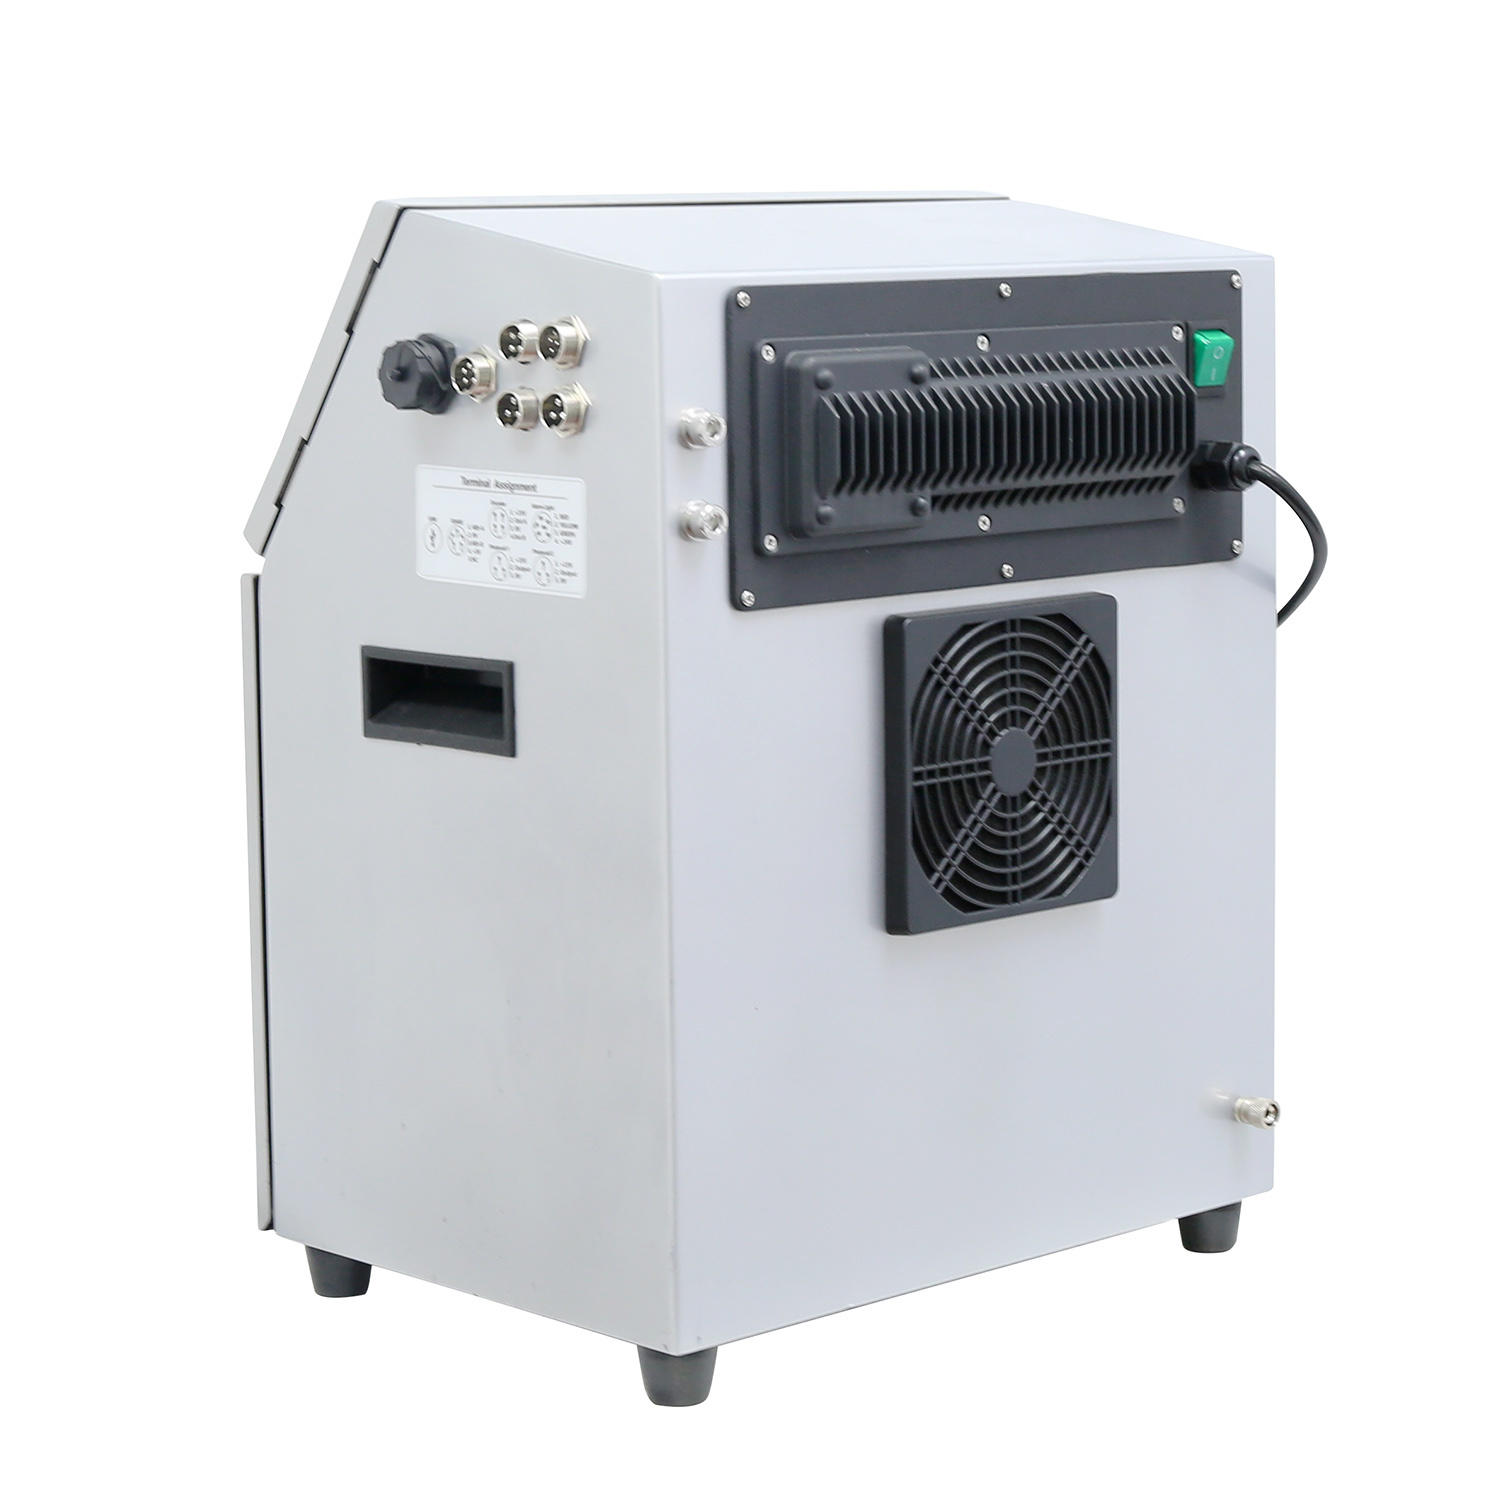 Leadtech Lt800 Industrial Variable Color Inkjet Printer Machine